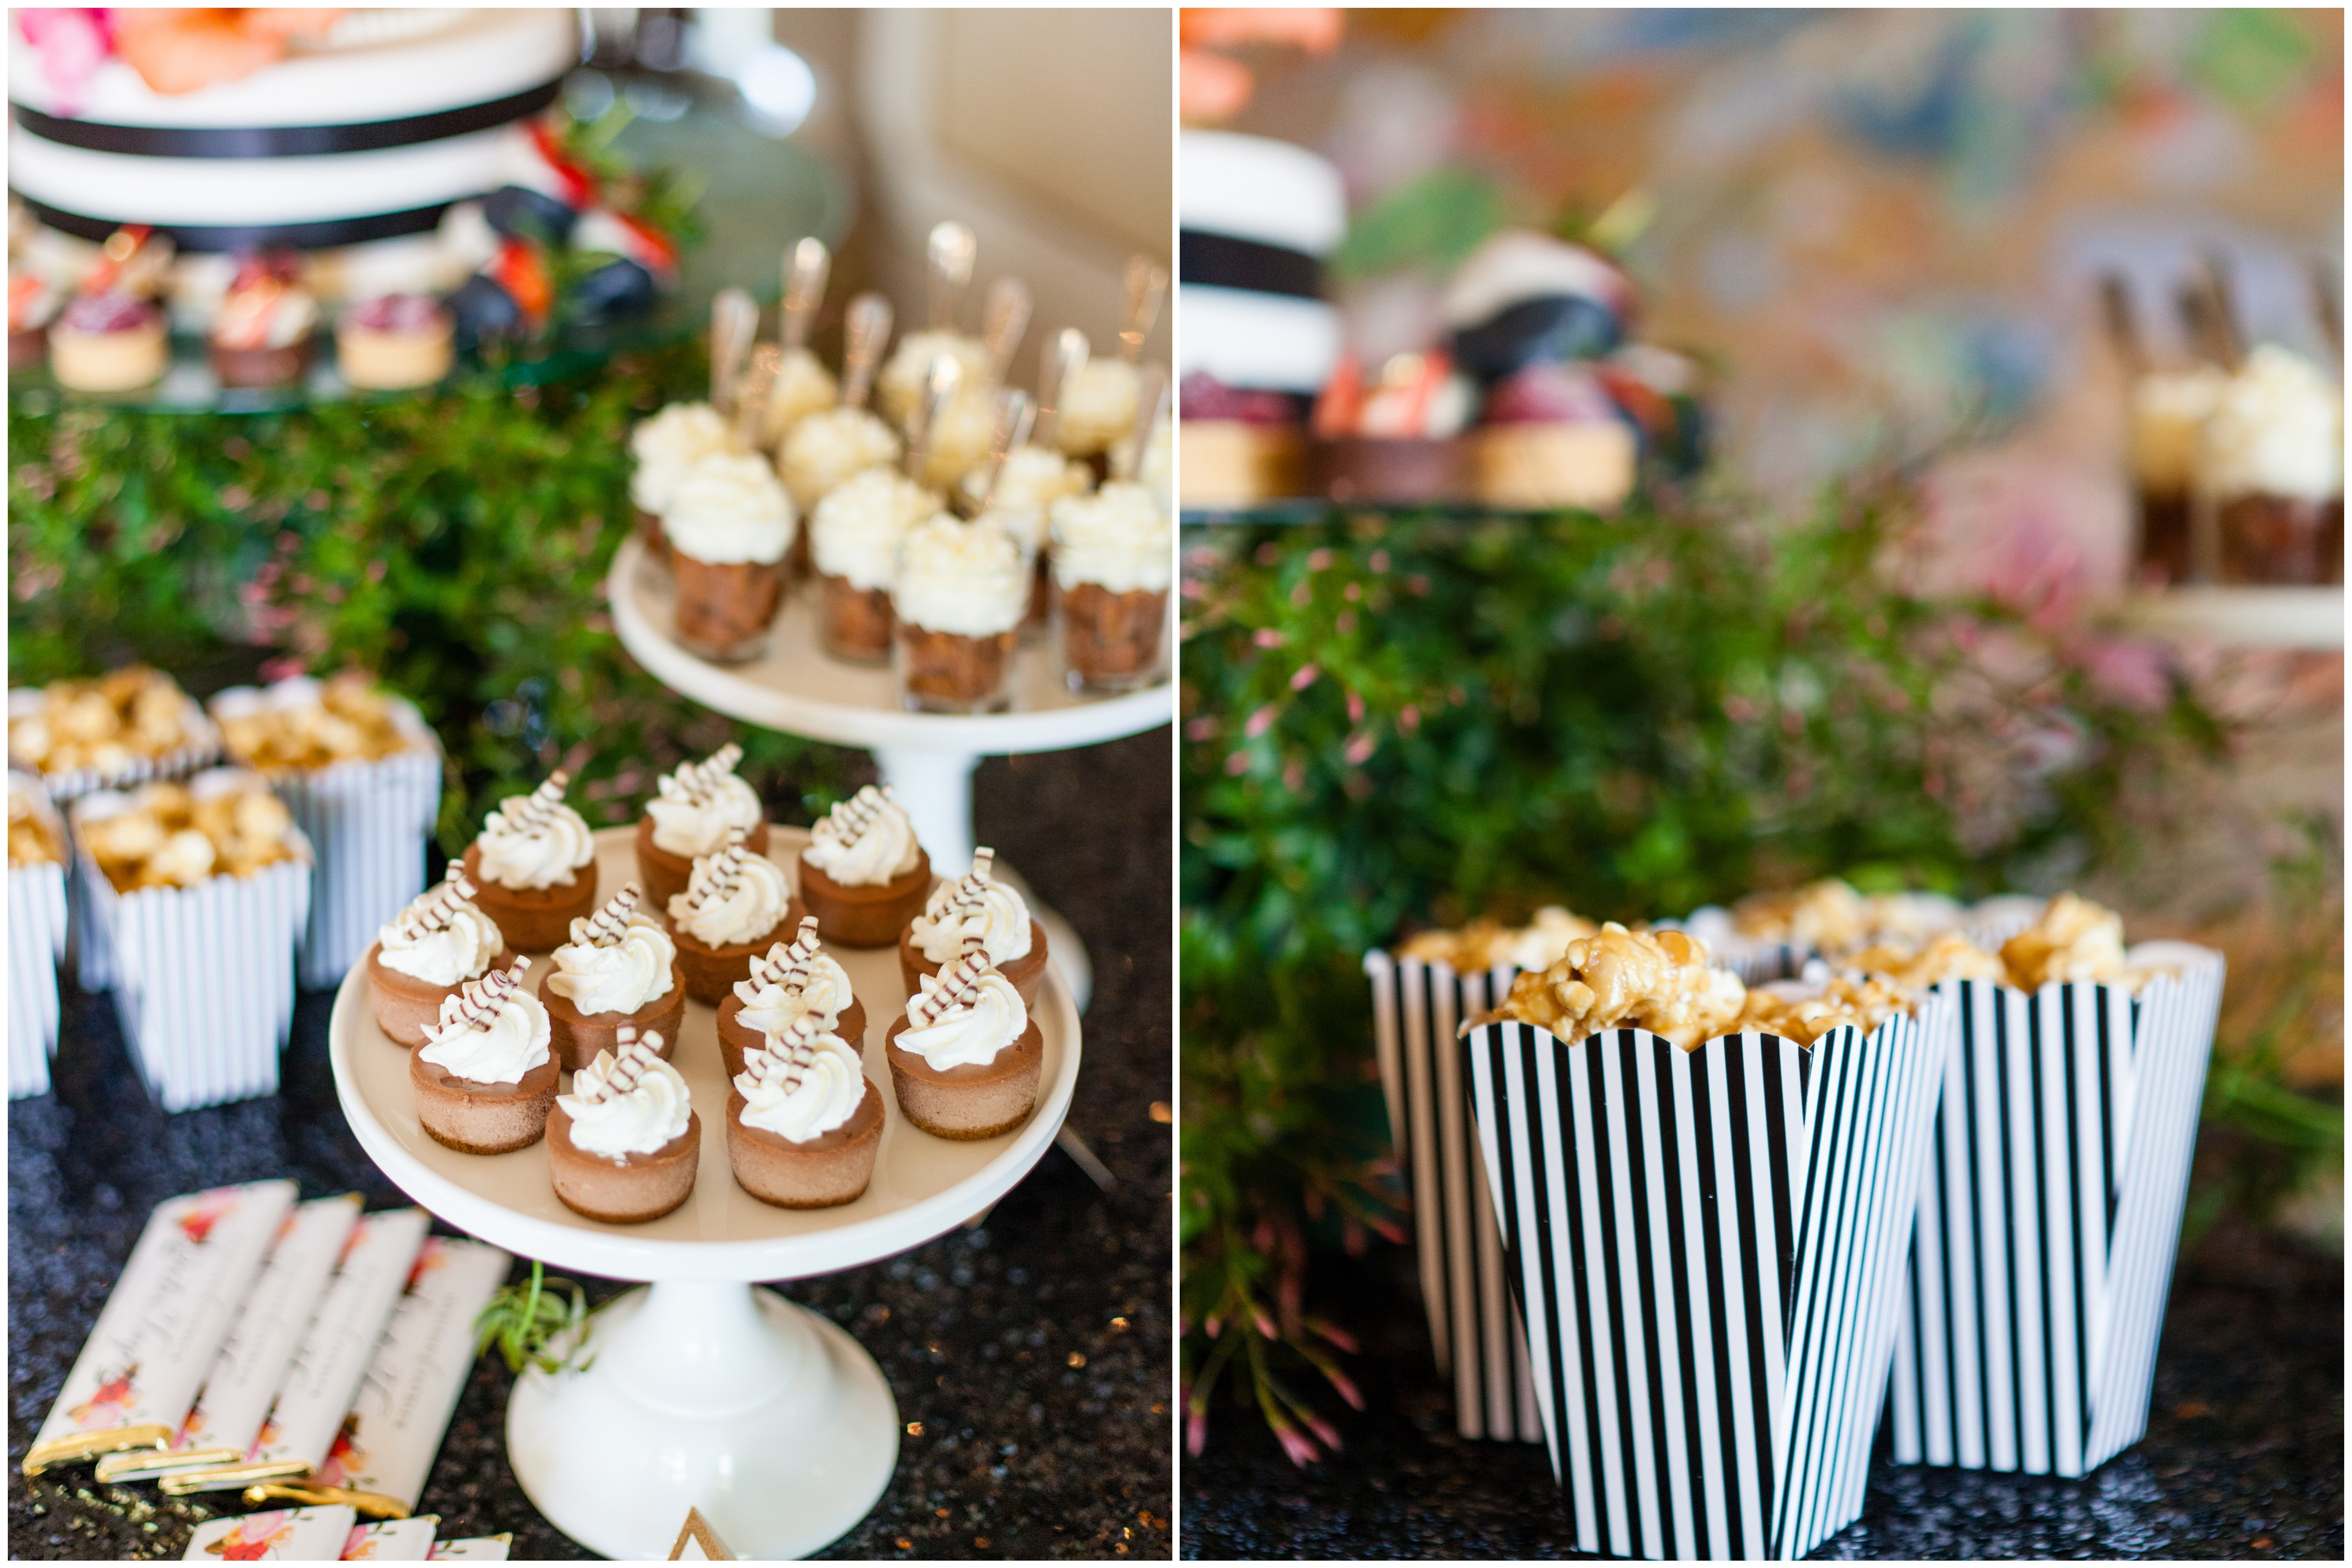 Madison's Kate Spade Bridal Shower Sweets